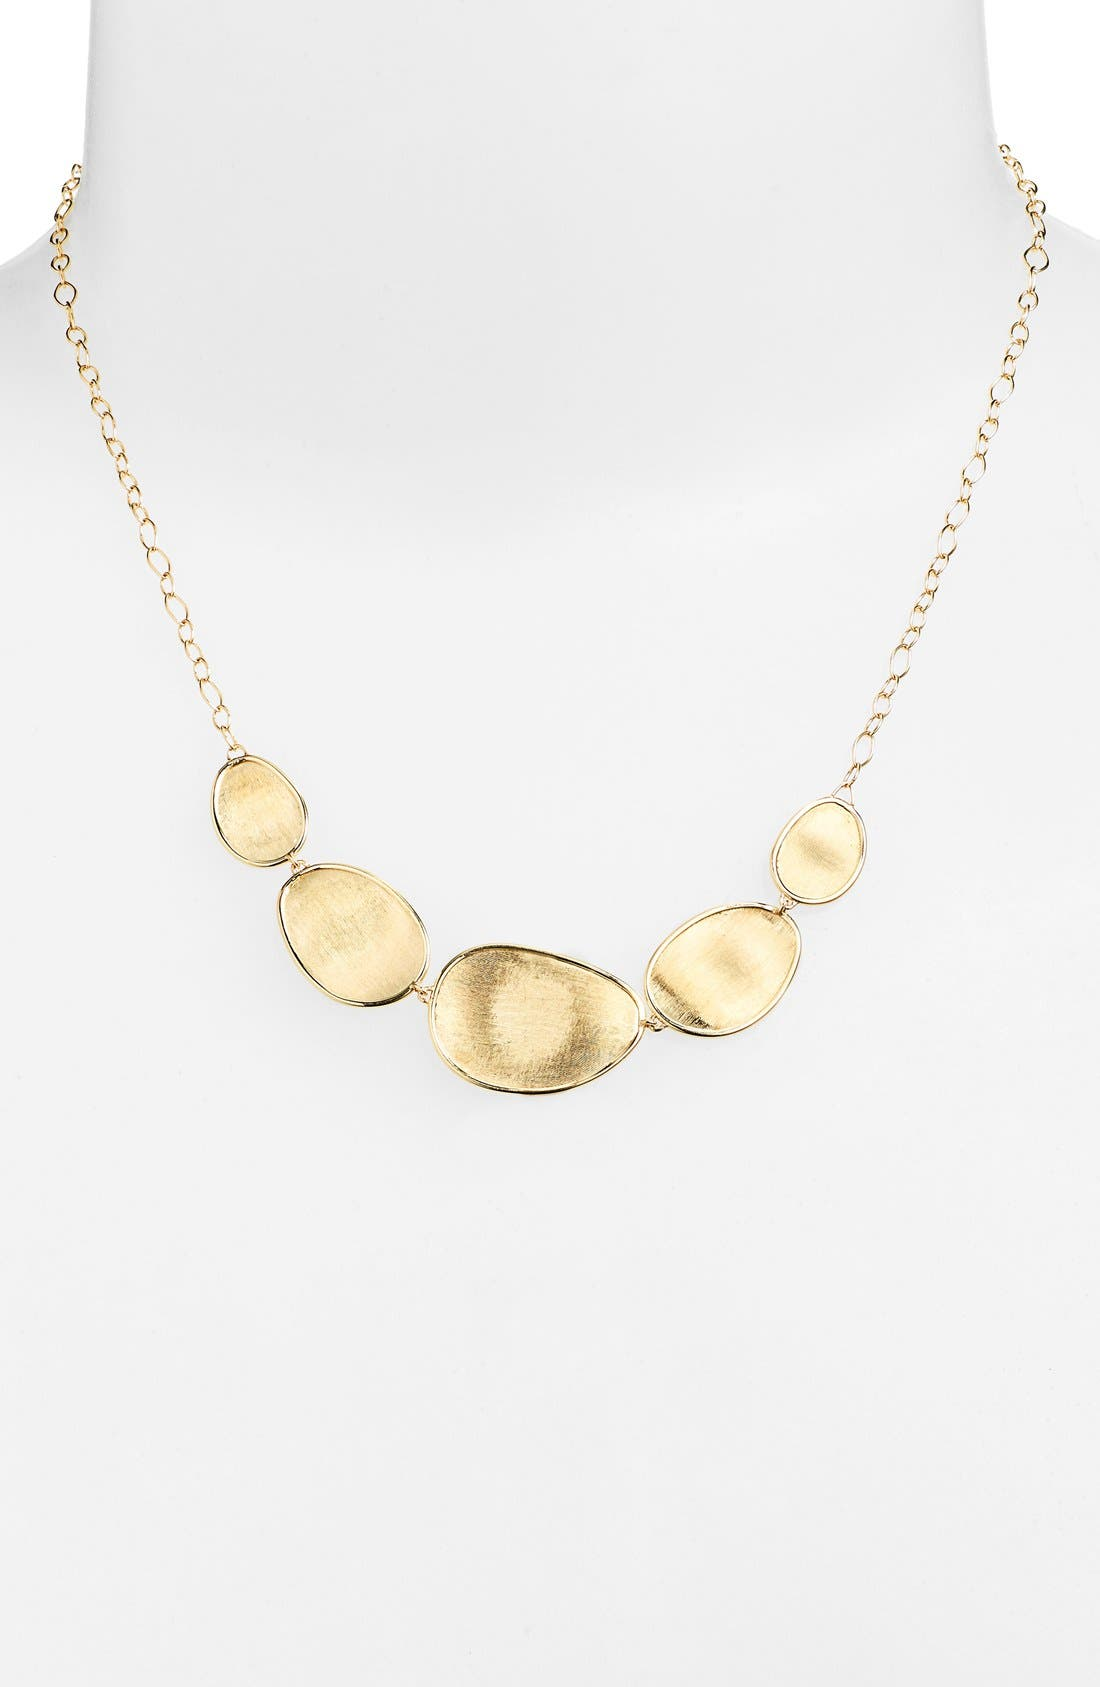 Alternate Image 1 Selected - Marco Bicego 'Lunaria' Frontal Necklace